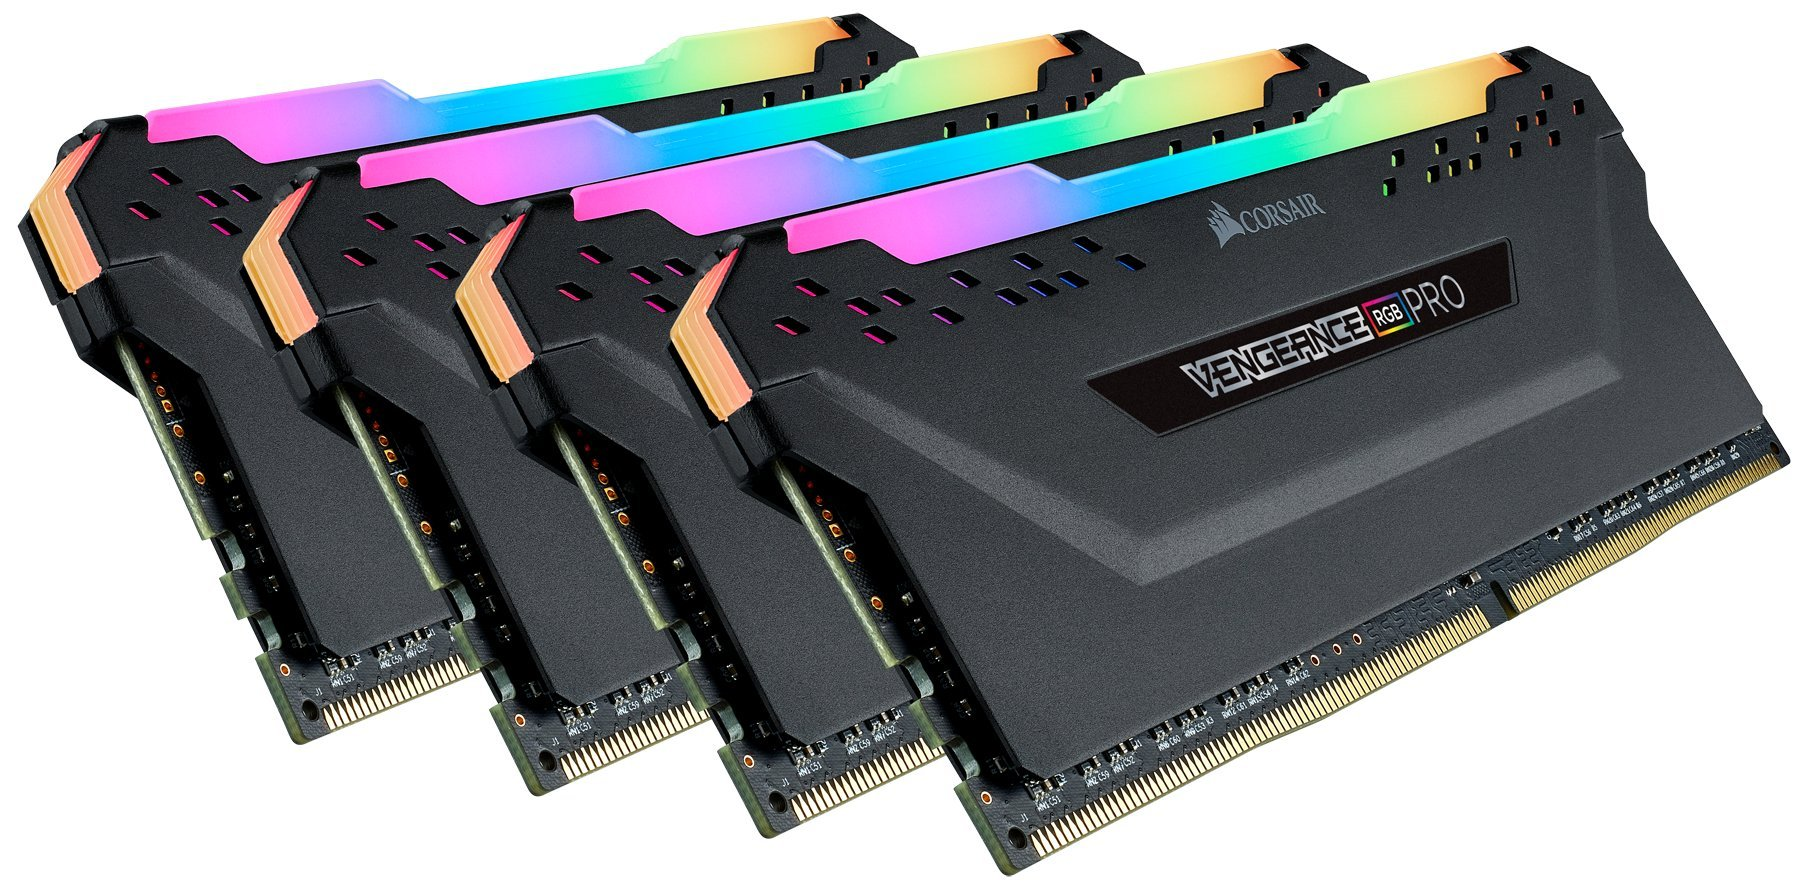 Memoria RAM 64GB Corsair CMW64GX4M4C3200C16 Vengeance RGB PRO (4x16GB) DDR4 3200 (PC4-25600) C16 Black